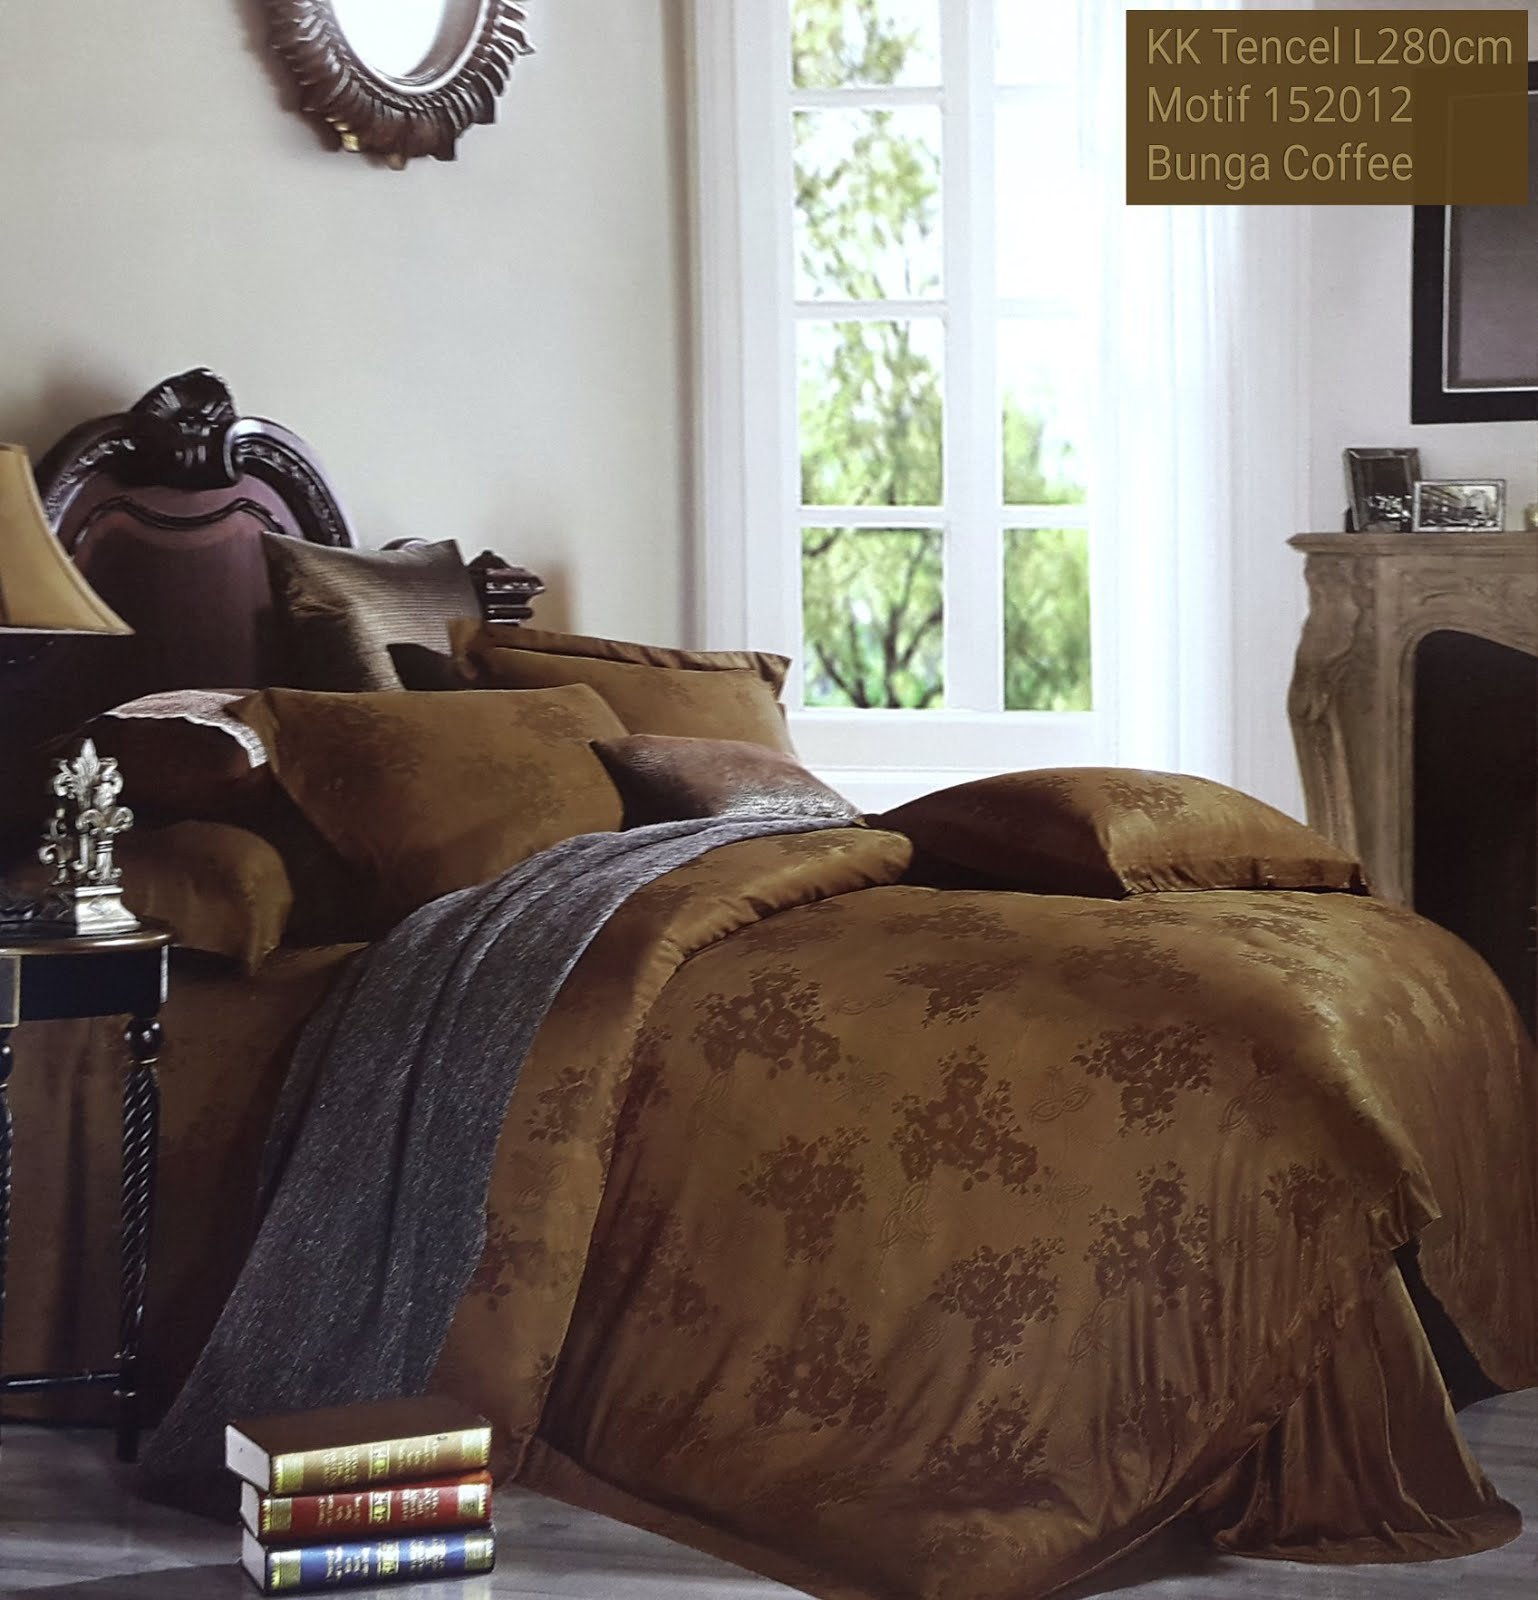 Sprei Kingkoil Motif Bunga Coffee